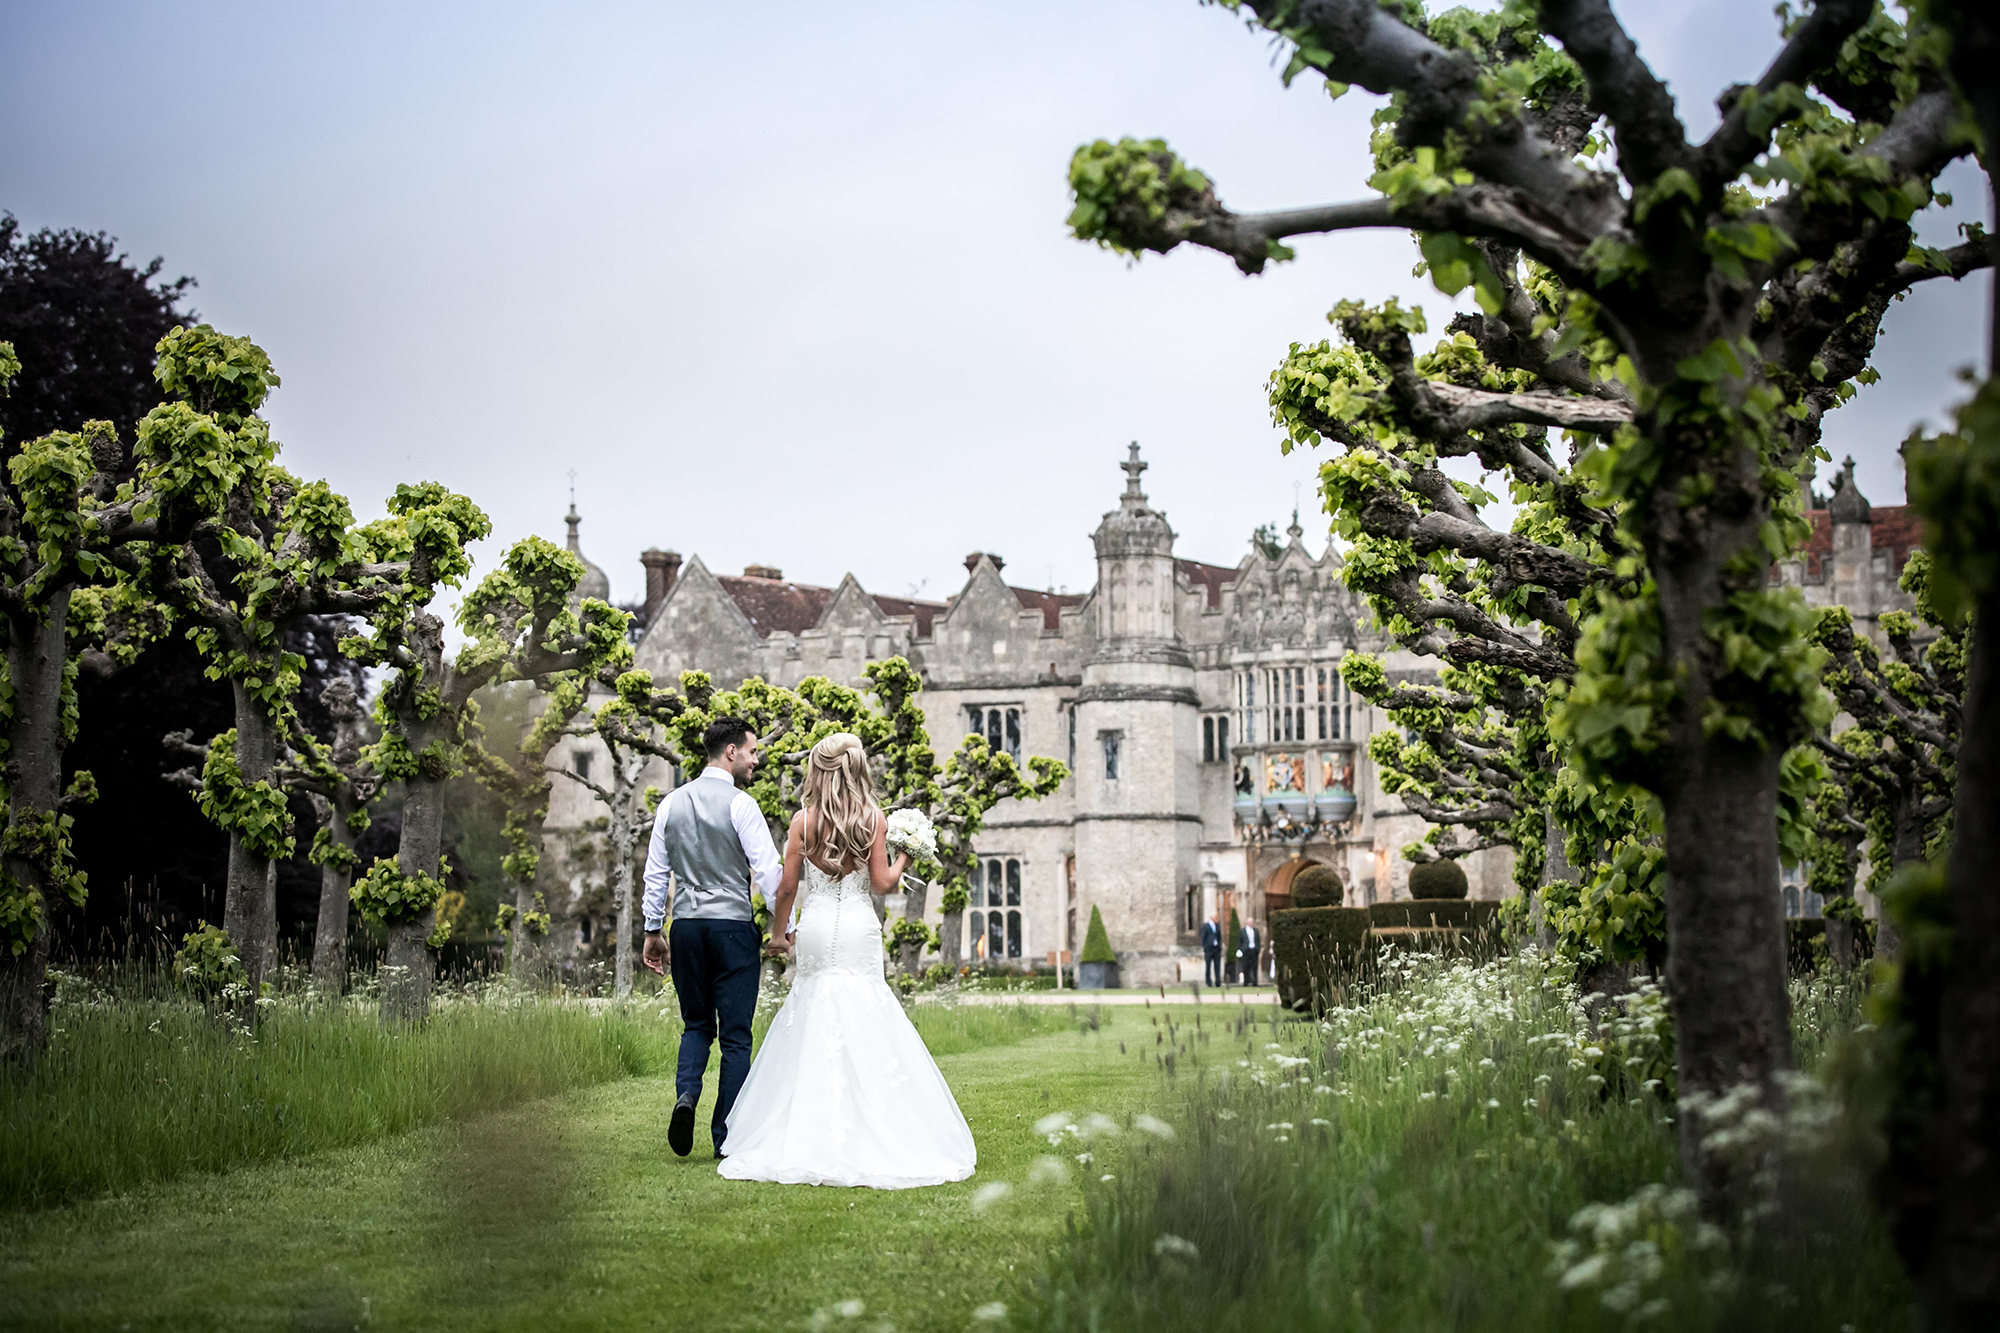 Newly married couple walking through the gardens towards Hengrave Hall